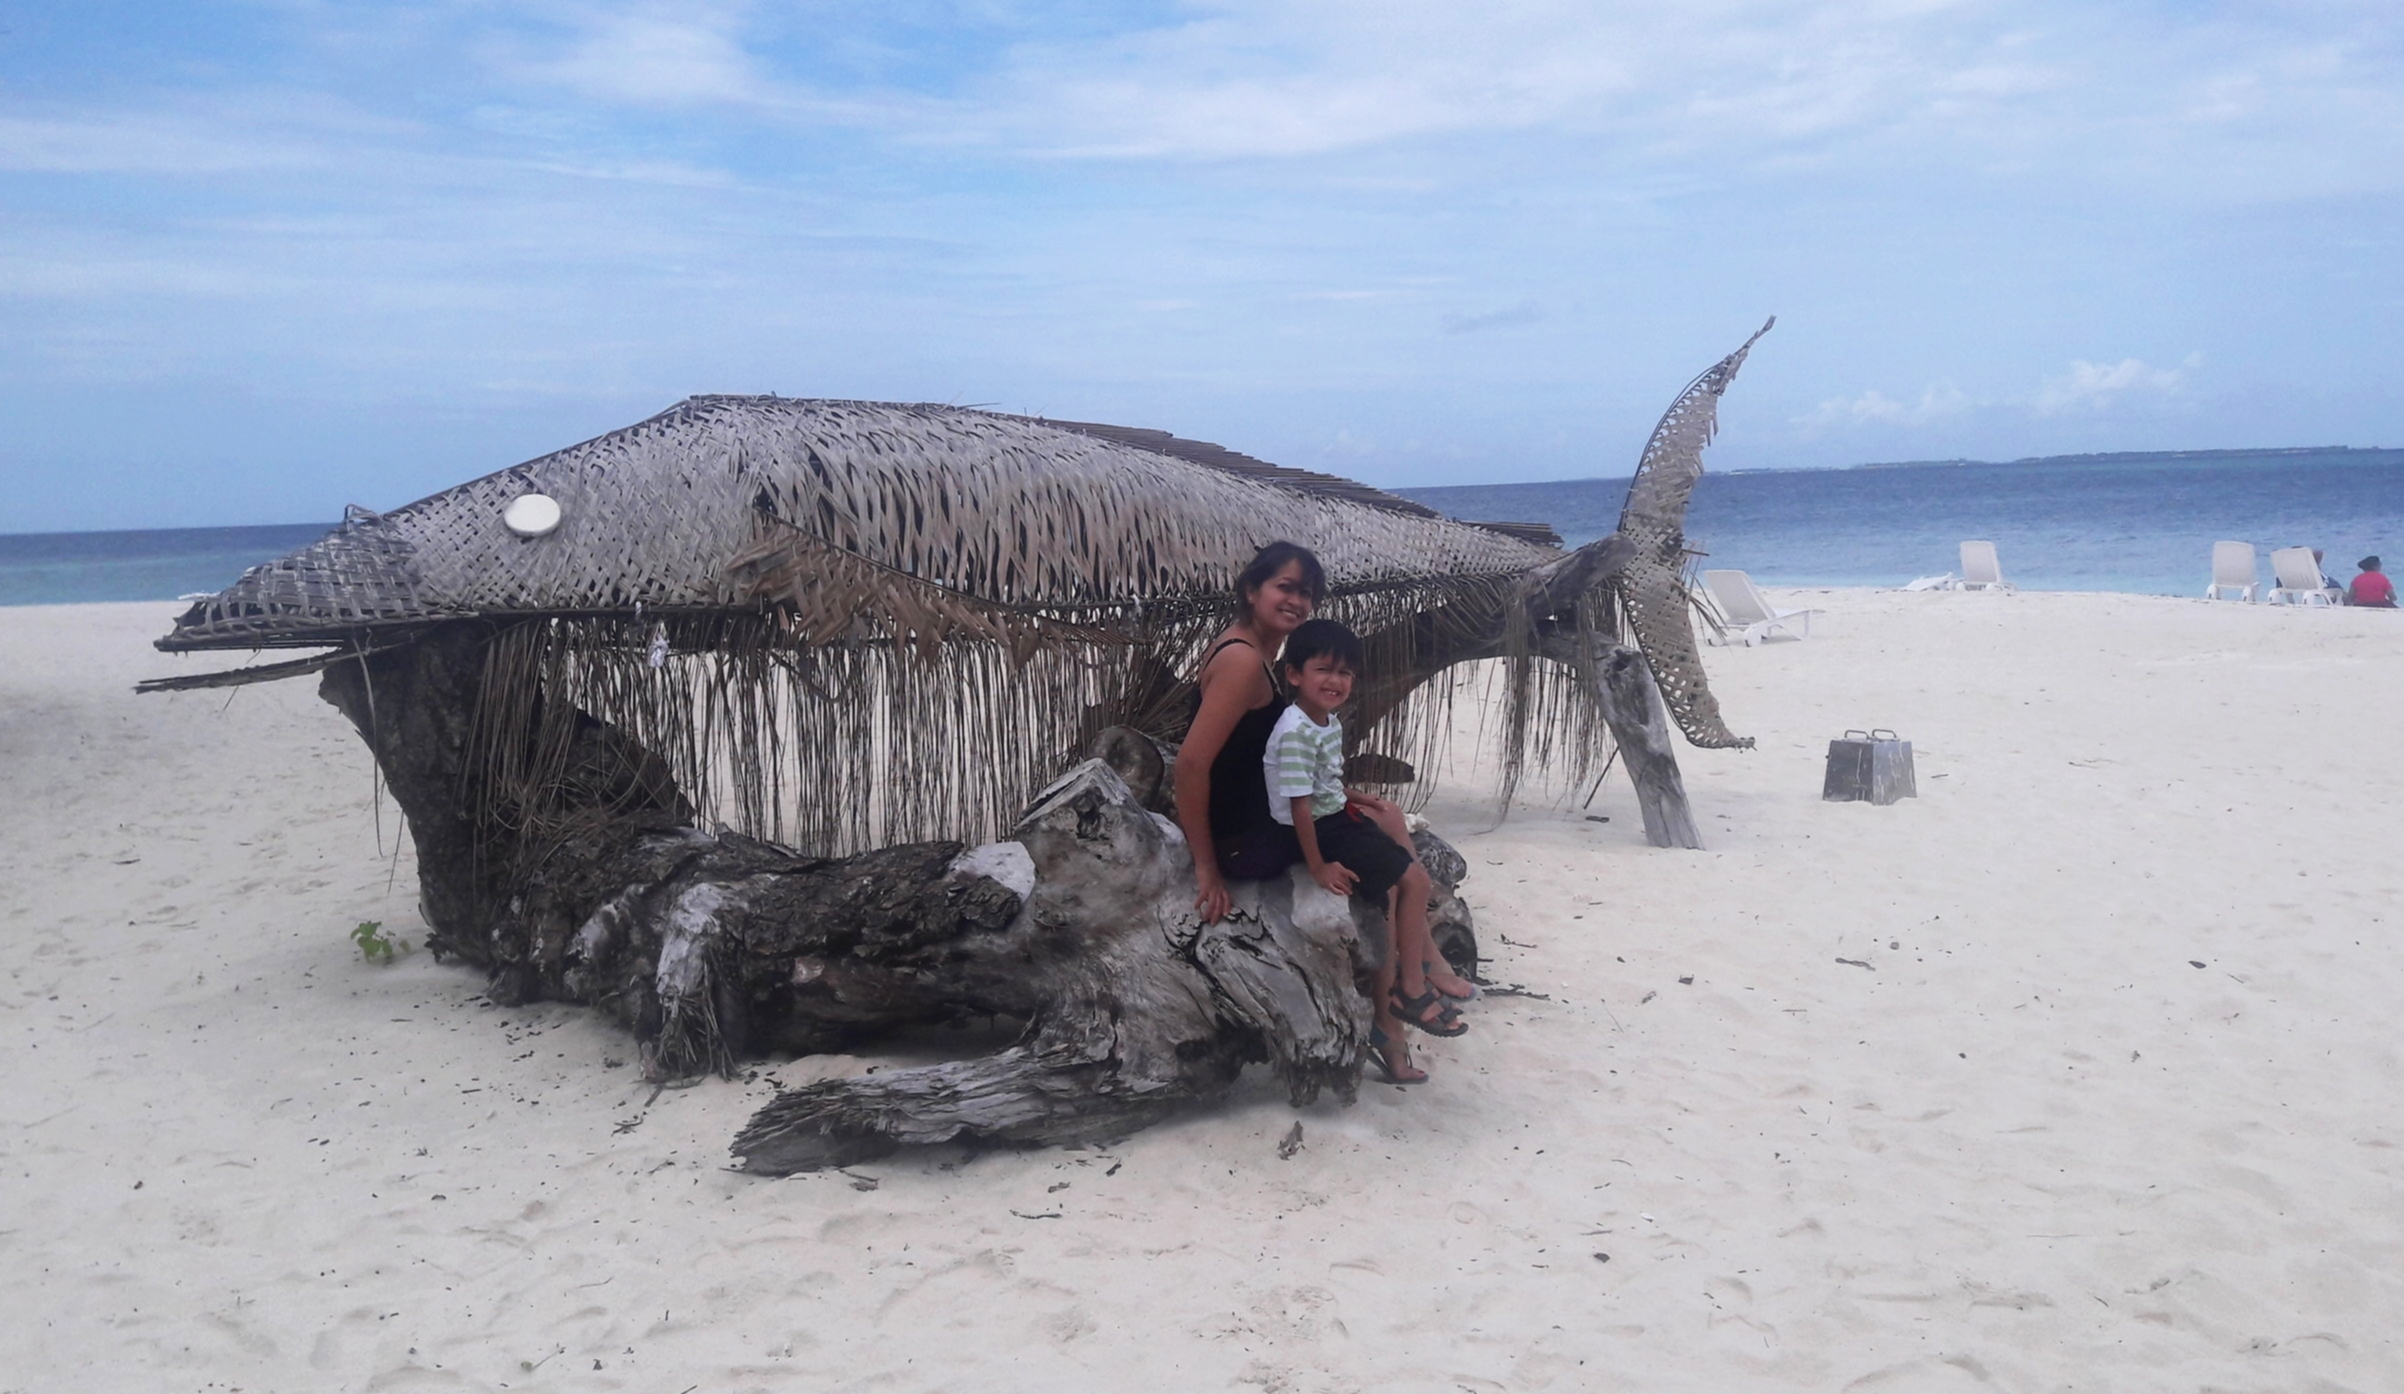 That fish is made of Coconut tree leaf